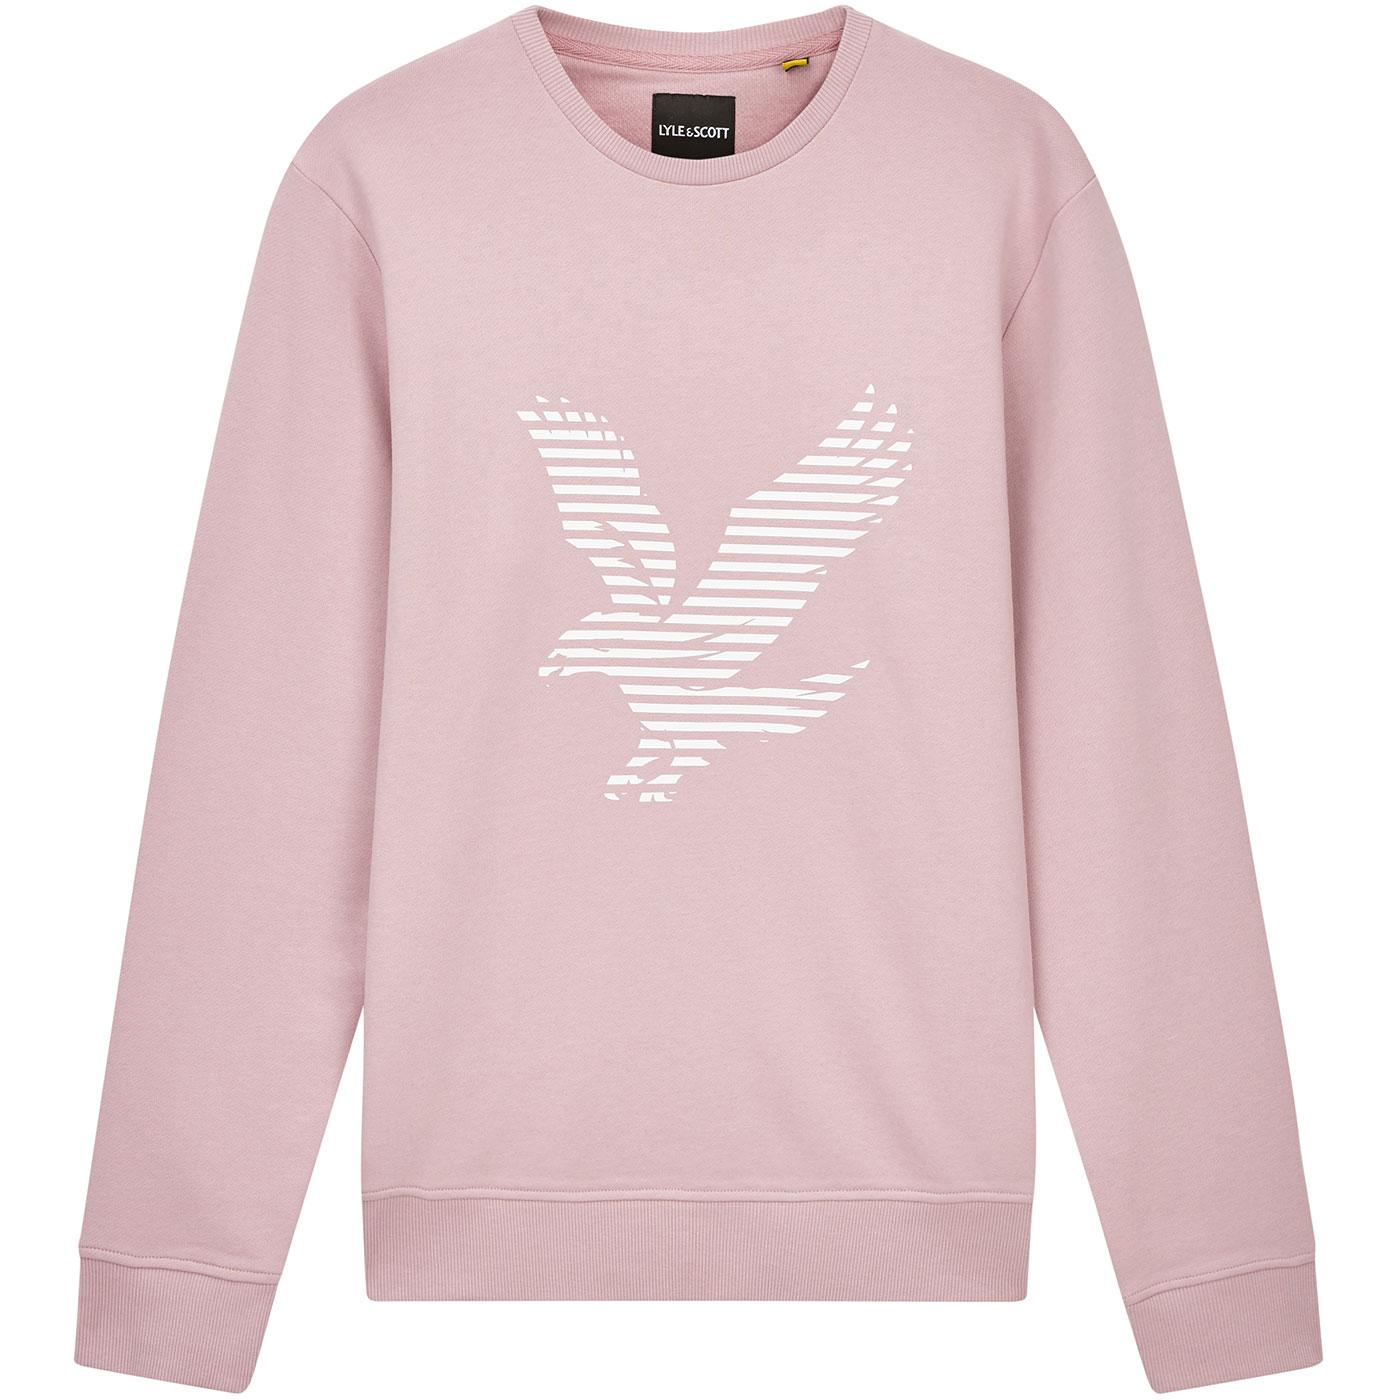 LYLE & SCOTT Retro Casuals Logo Sweatshirt (LM)